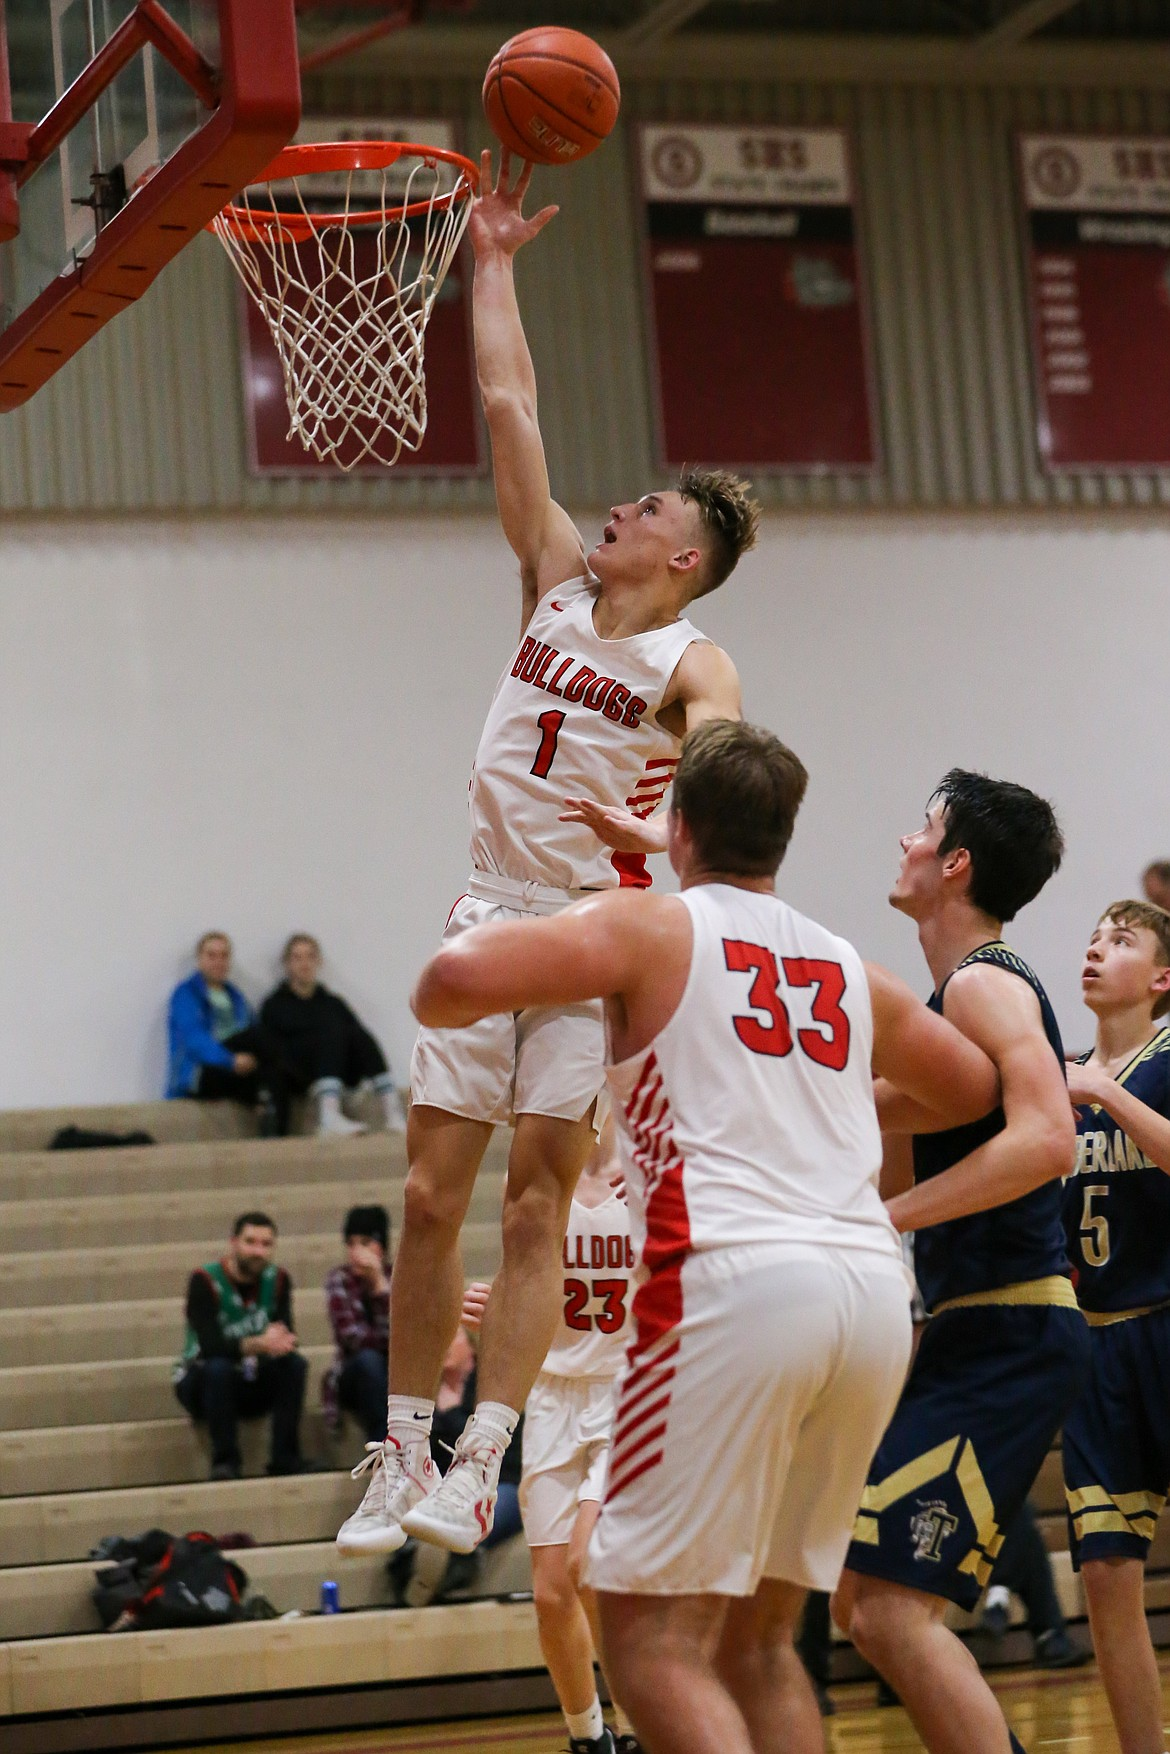 (Photo courtesy of JASON DUCHOW PHOTOGRAPHY)   Senior Ryan Roos converts a layup during a game this season at Les Rogers Court.